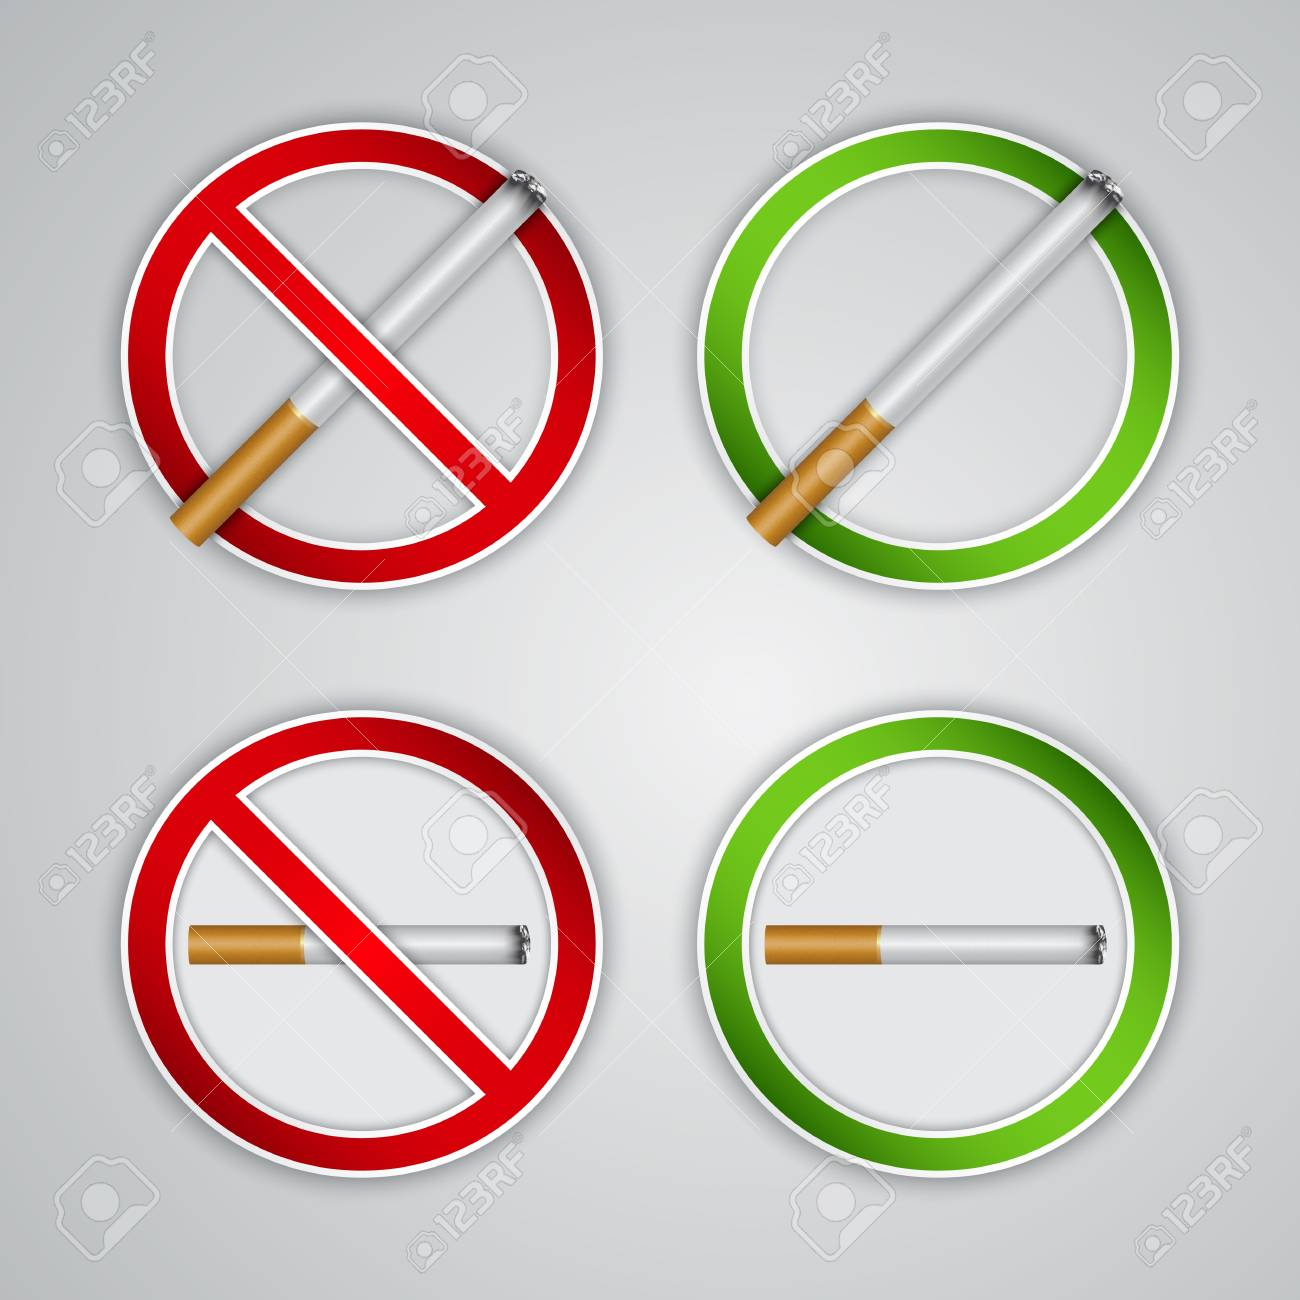 No smoking and Smoking area signs, highly detailed Stock Vector - 16645789